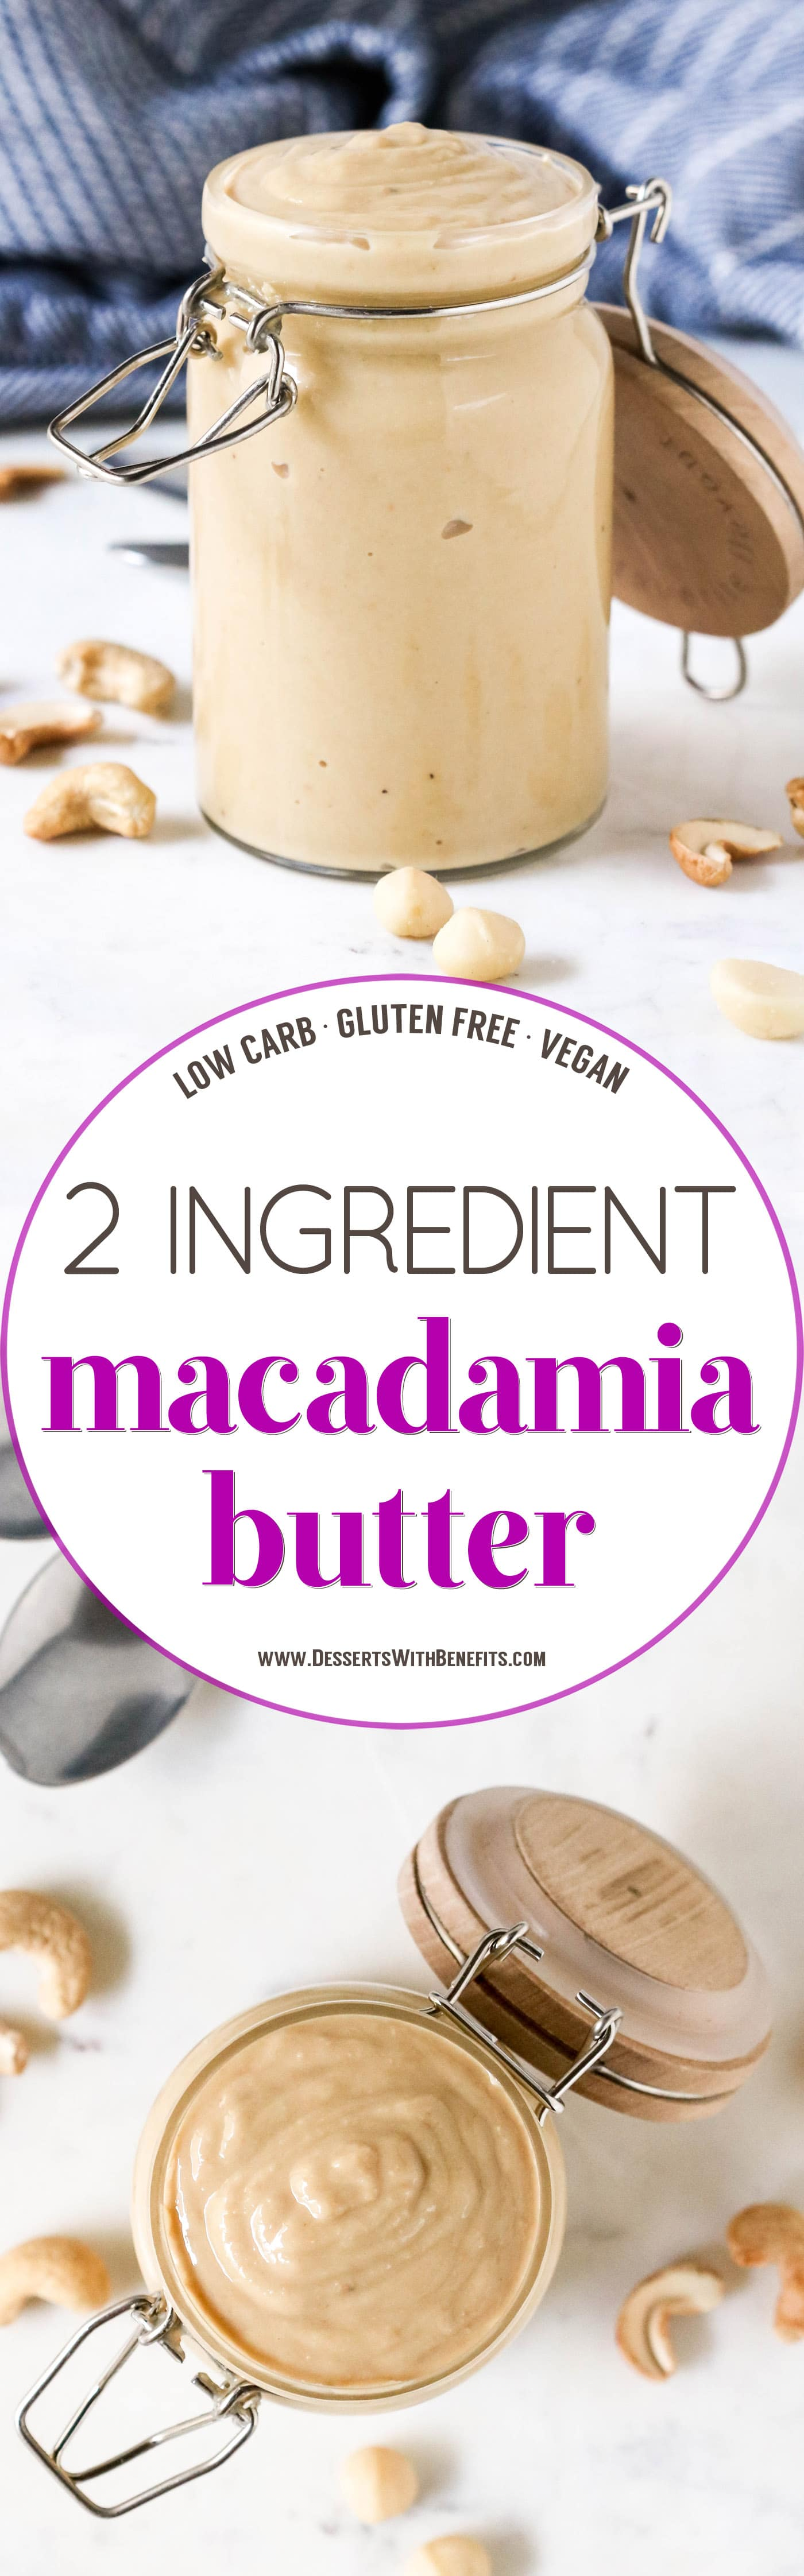 You can make Macadamia Butter AT HOME in as little as 3 minutes! It's so rich, buttery, smooth, and creamy, you'll wonder why it's not as popular as peanut butter and almond butter. You're 3 minutes away from the silkiest, drippiest, most flavorful Homemade Macadamia Butter in all the land (all natural, sugar free, low carb, gluten free, vegan)